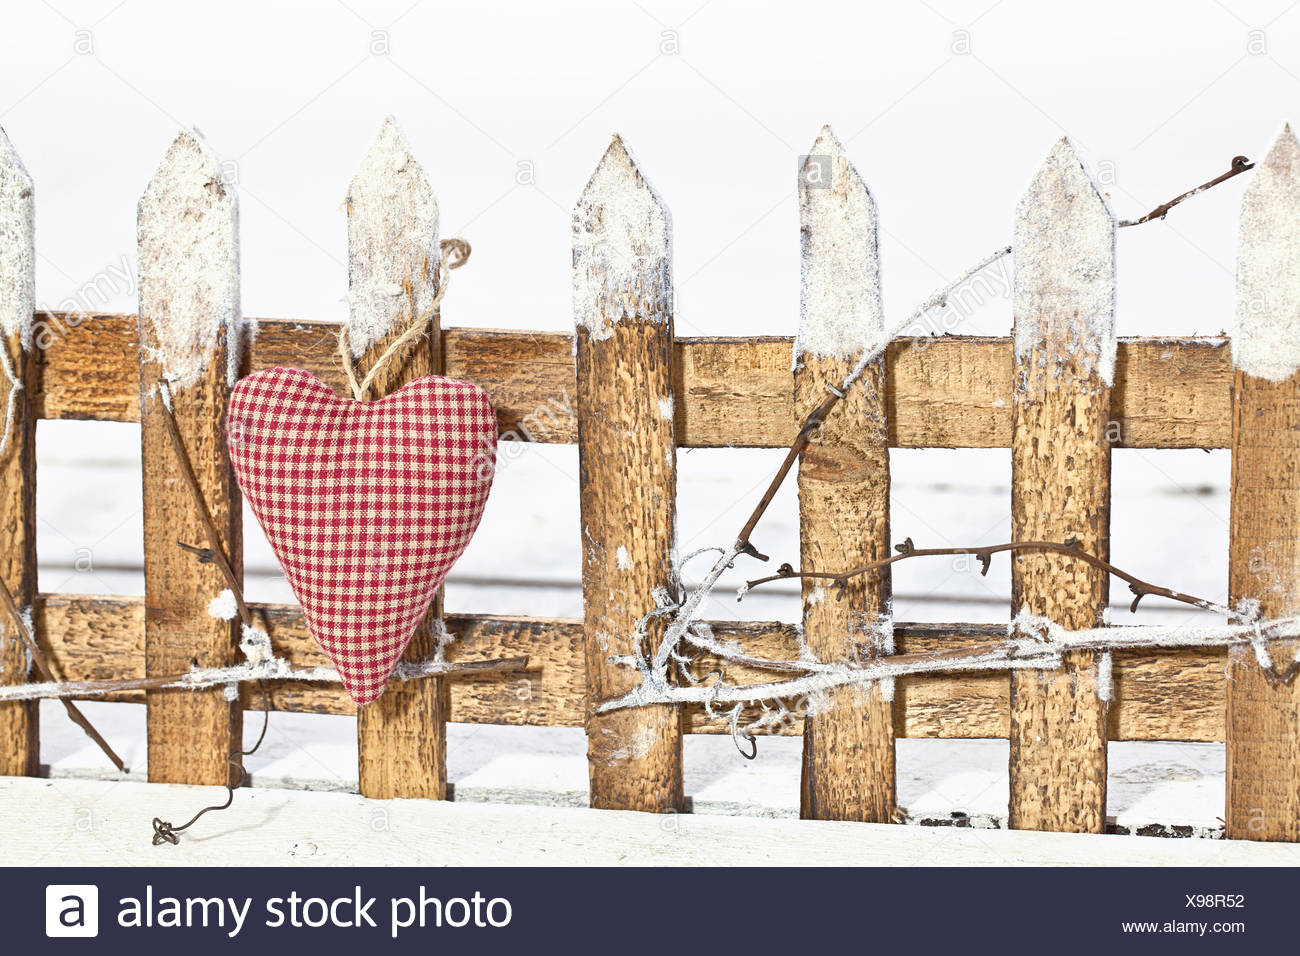 Deko fence and checked heart - Stock Image